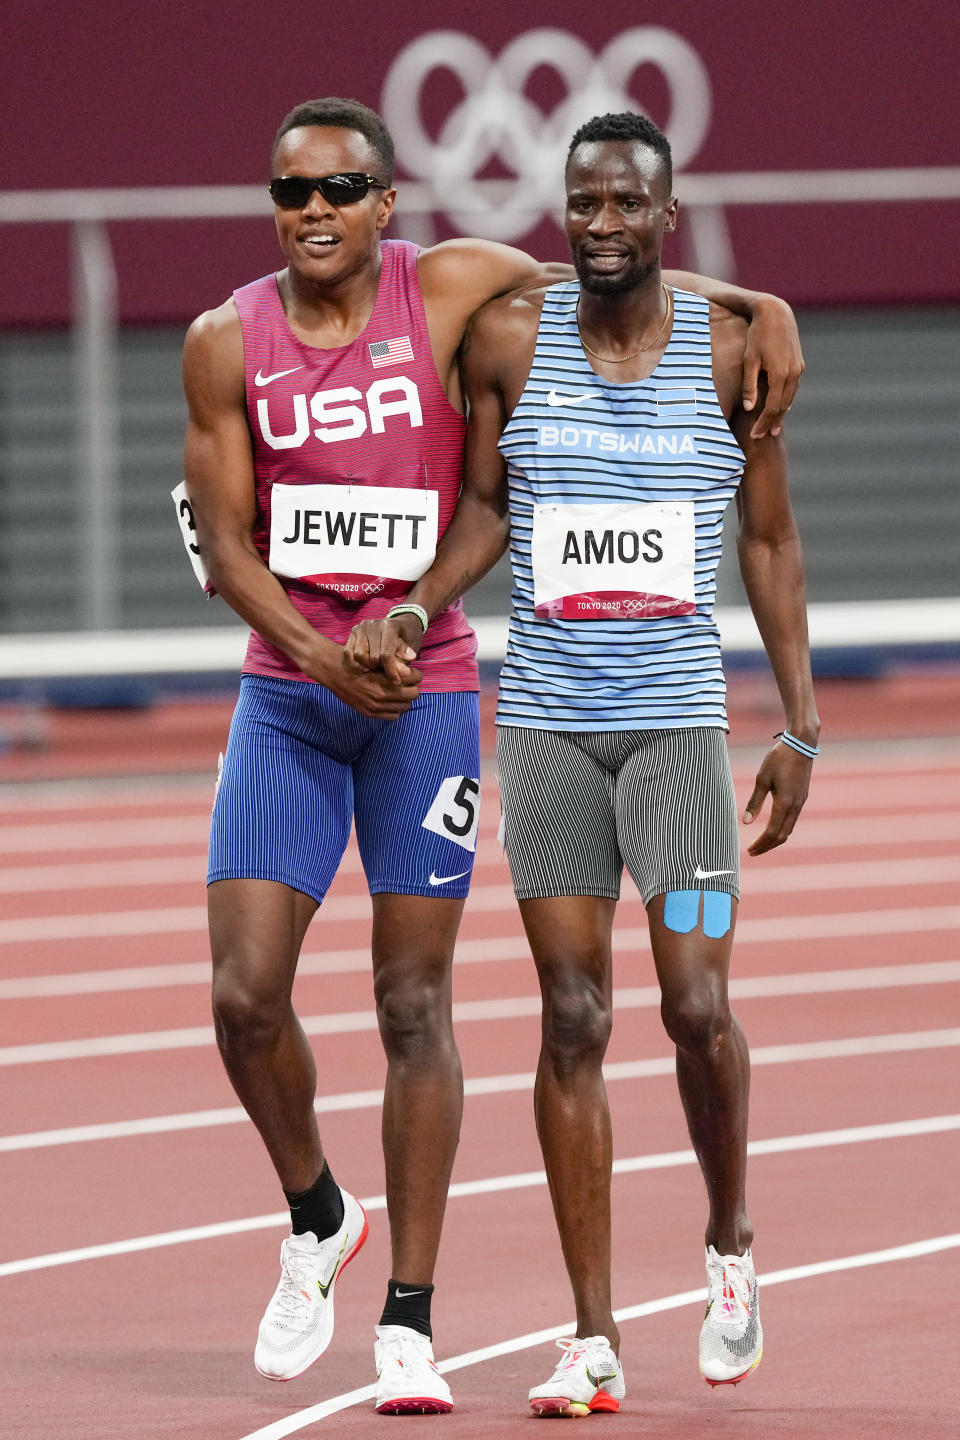 Isaiah Jewett, of the United States, and Nijel Amos, right, of Botswana, walk off after falling in the men's 800-meter semifinal at the 2020 Summer Olympics, Sunday, Aug. 1, 2021, in Tokyo. (AP Photo/Jae C. Hong)